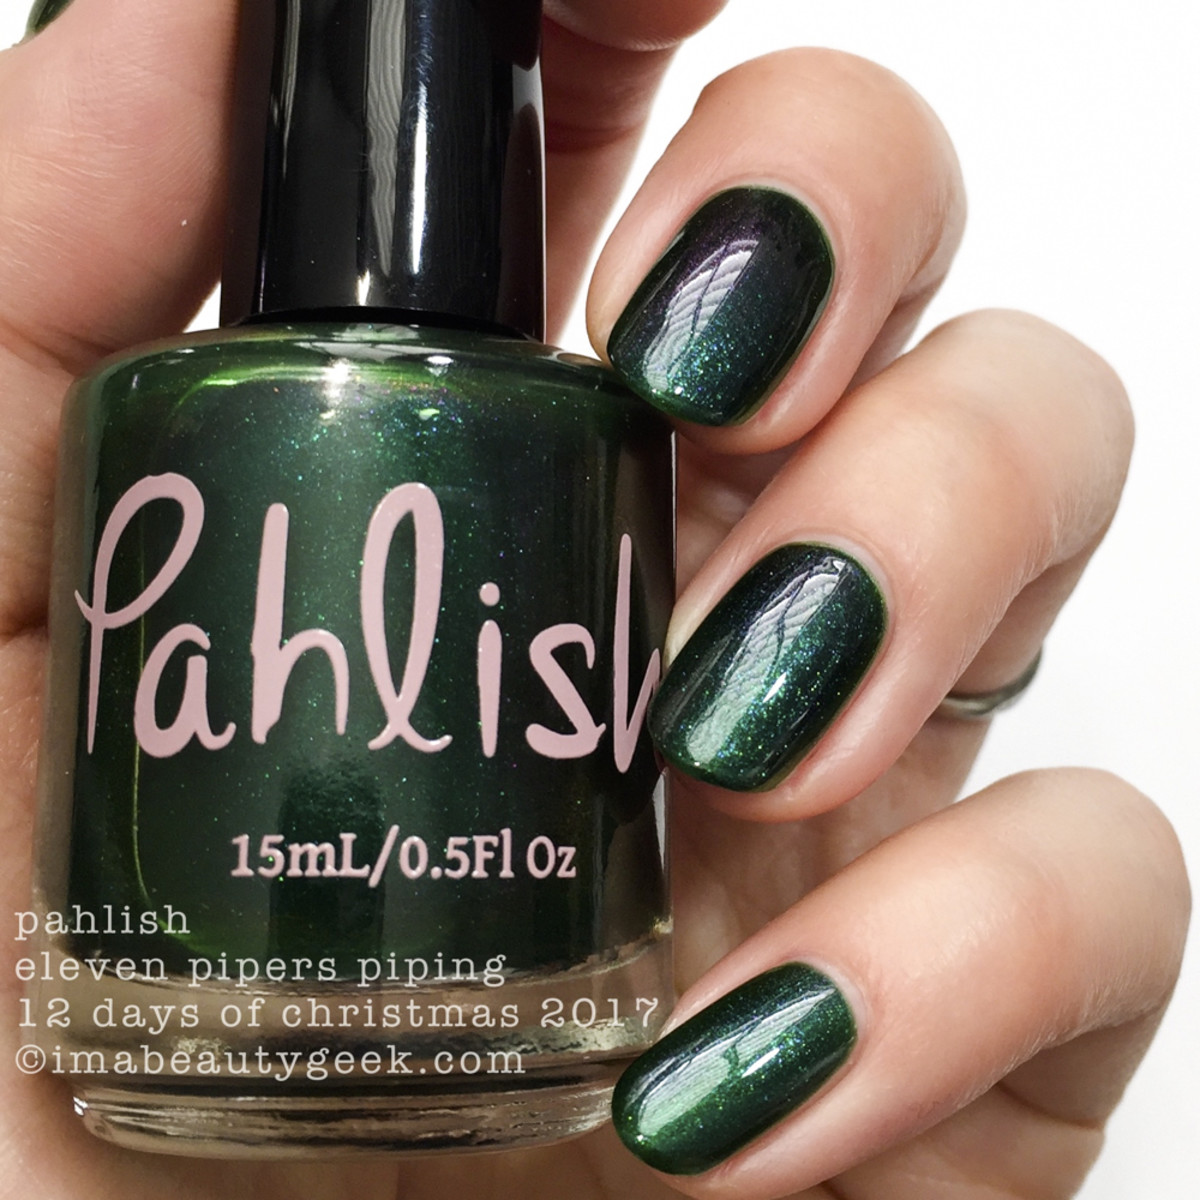 Pahlish Eleven Pipers Piping - Pahlish 12 Days of Christmas 2017 2